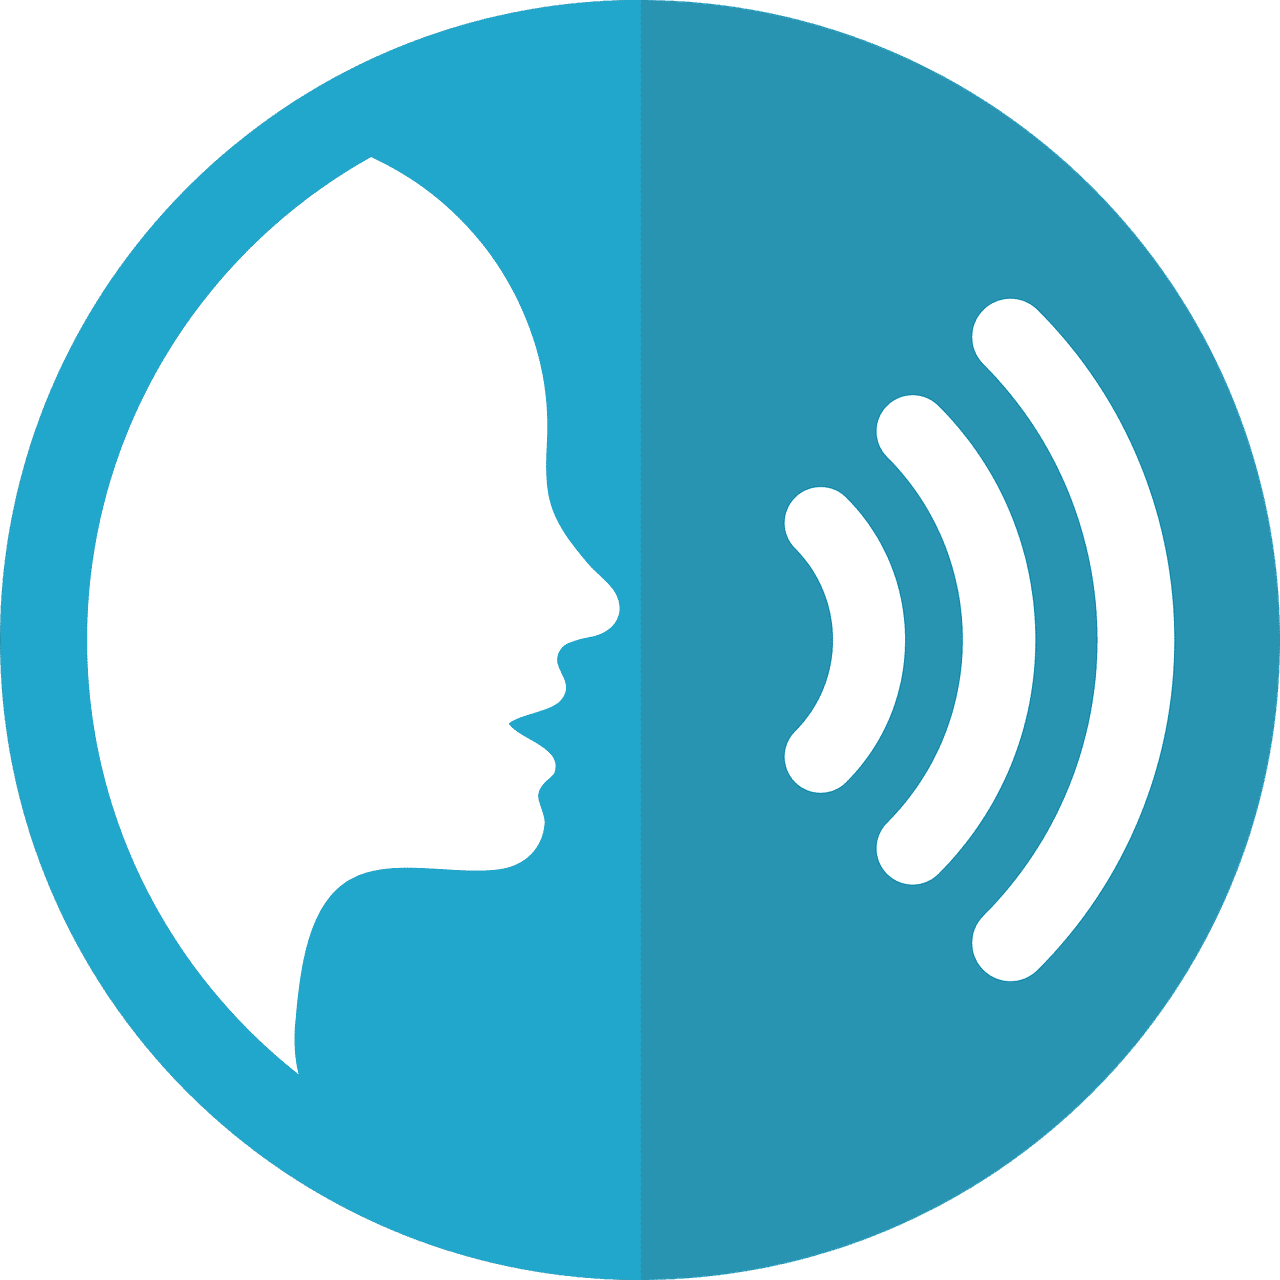 A person speaking through voice search